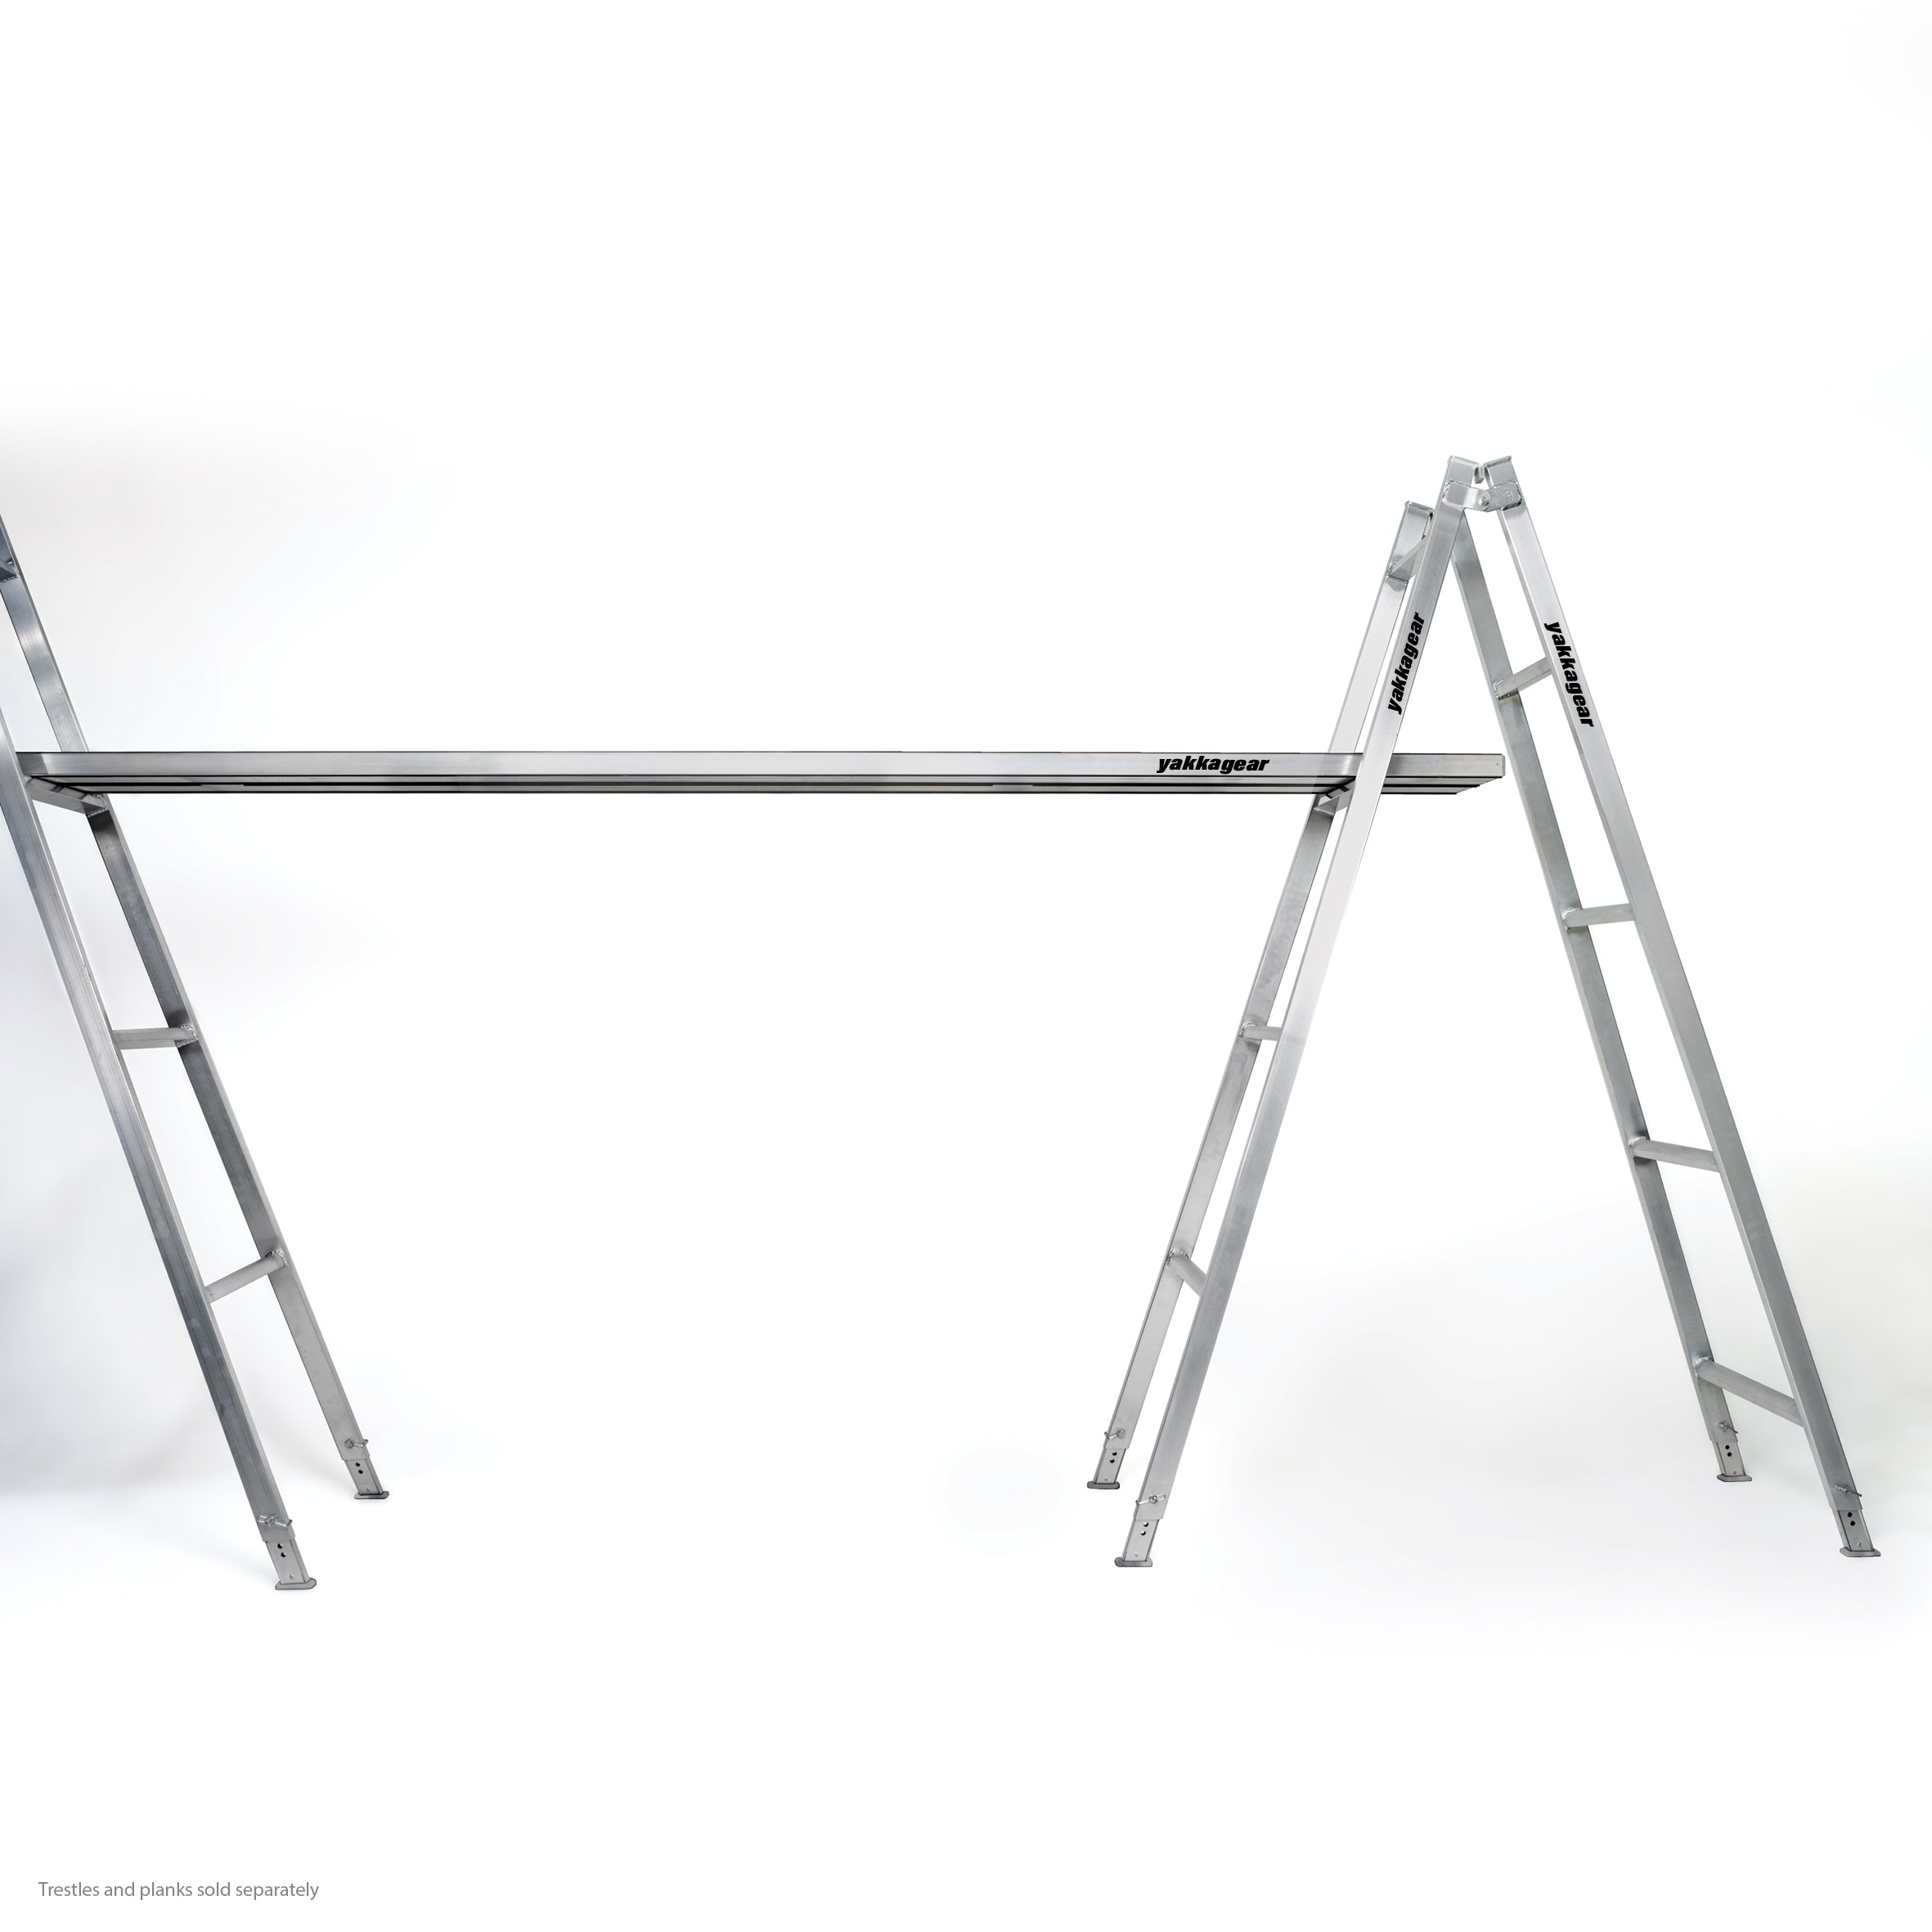 aluminium adjustable trestle - overview - yakka gear